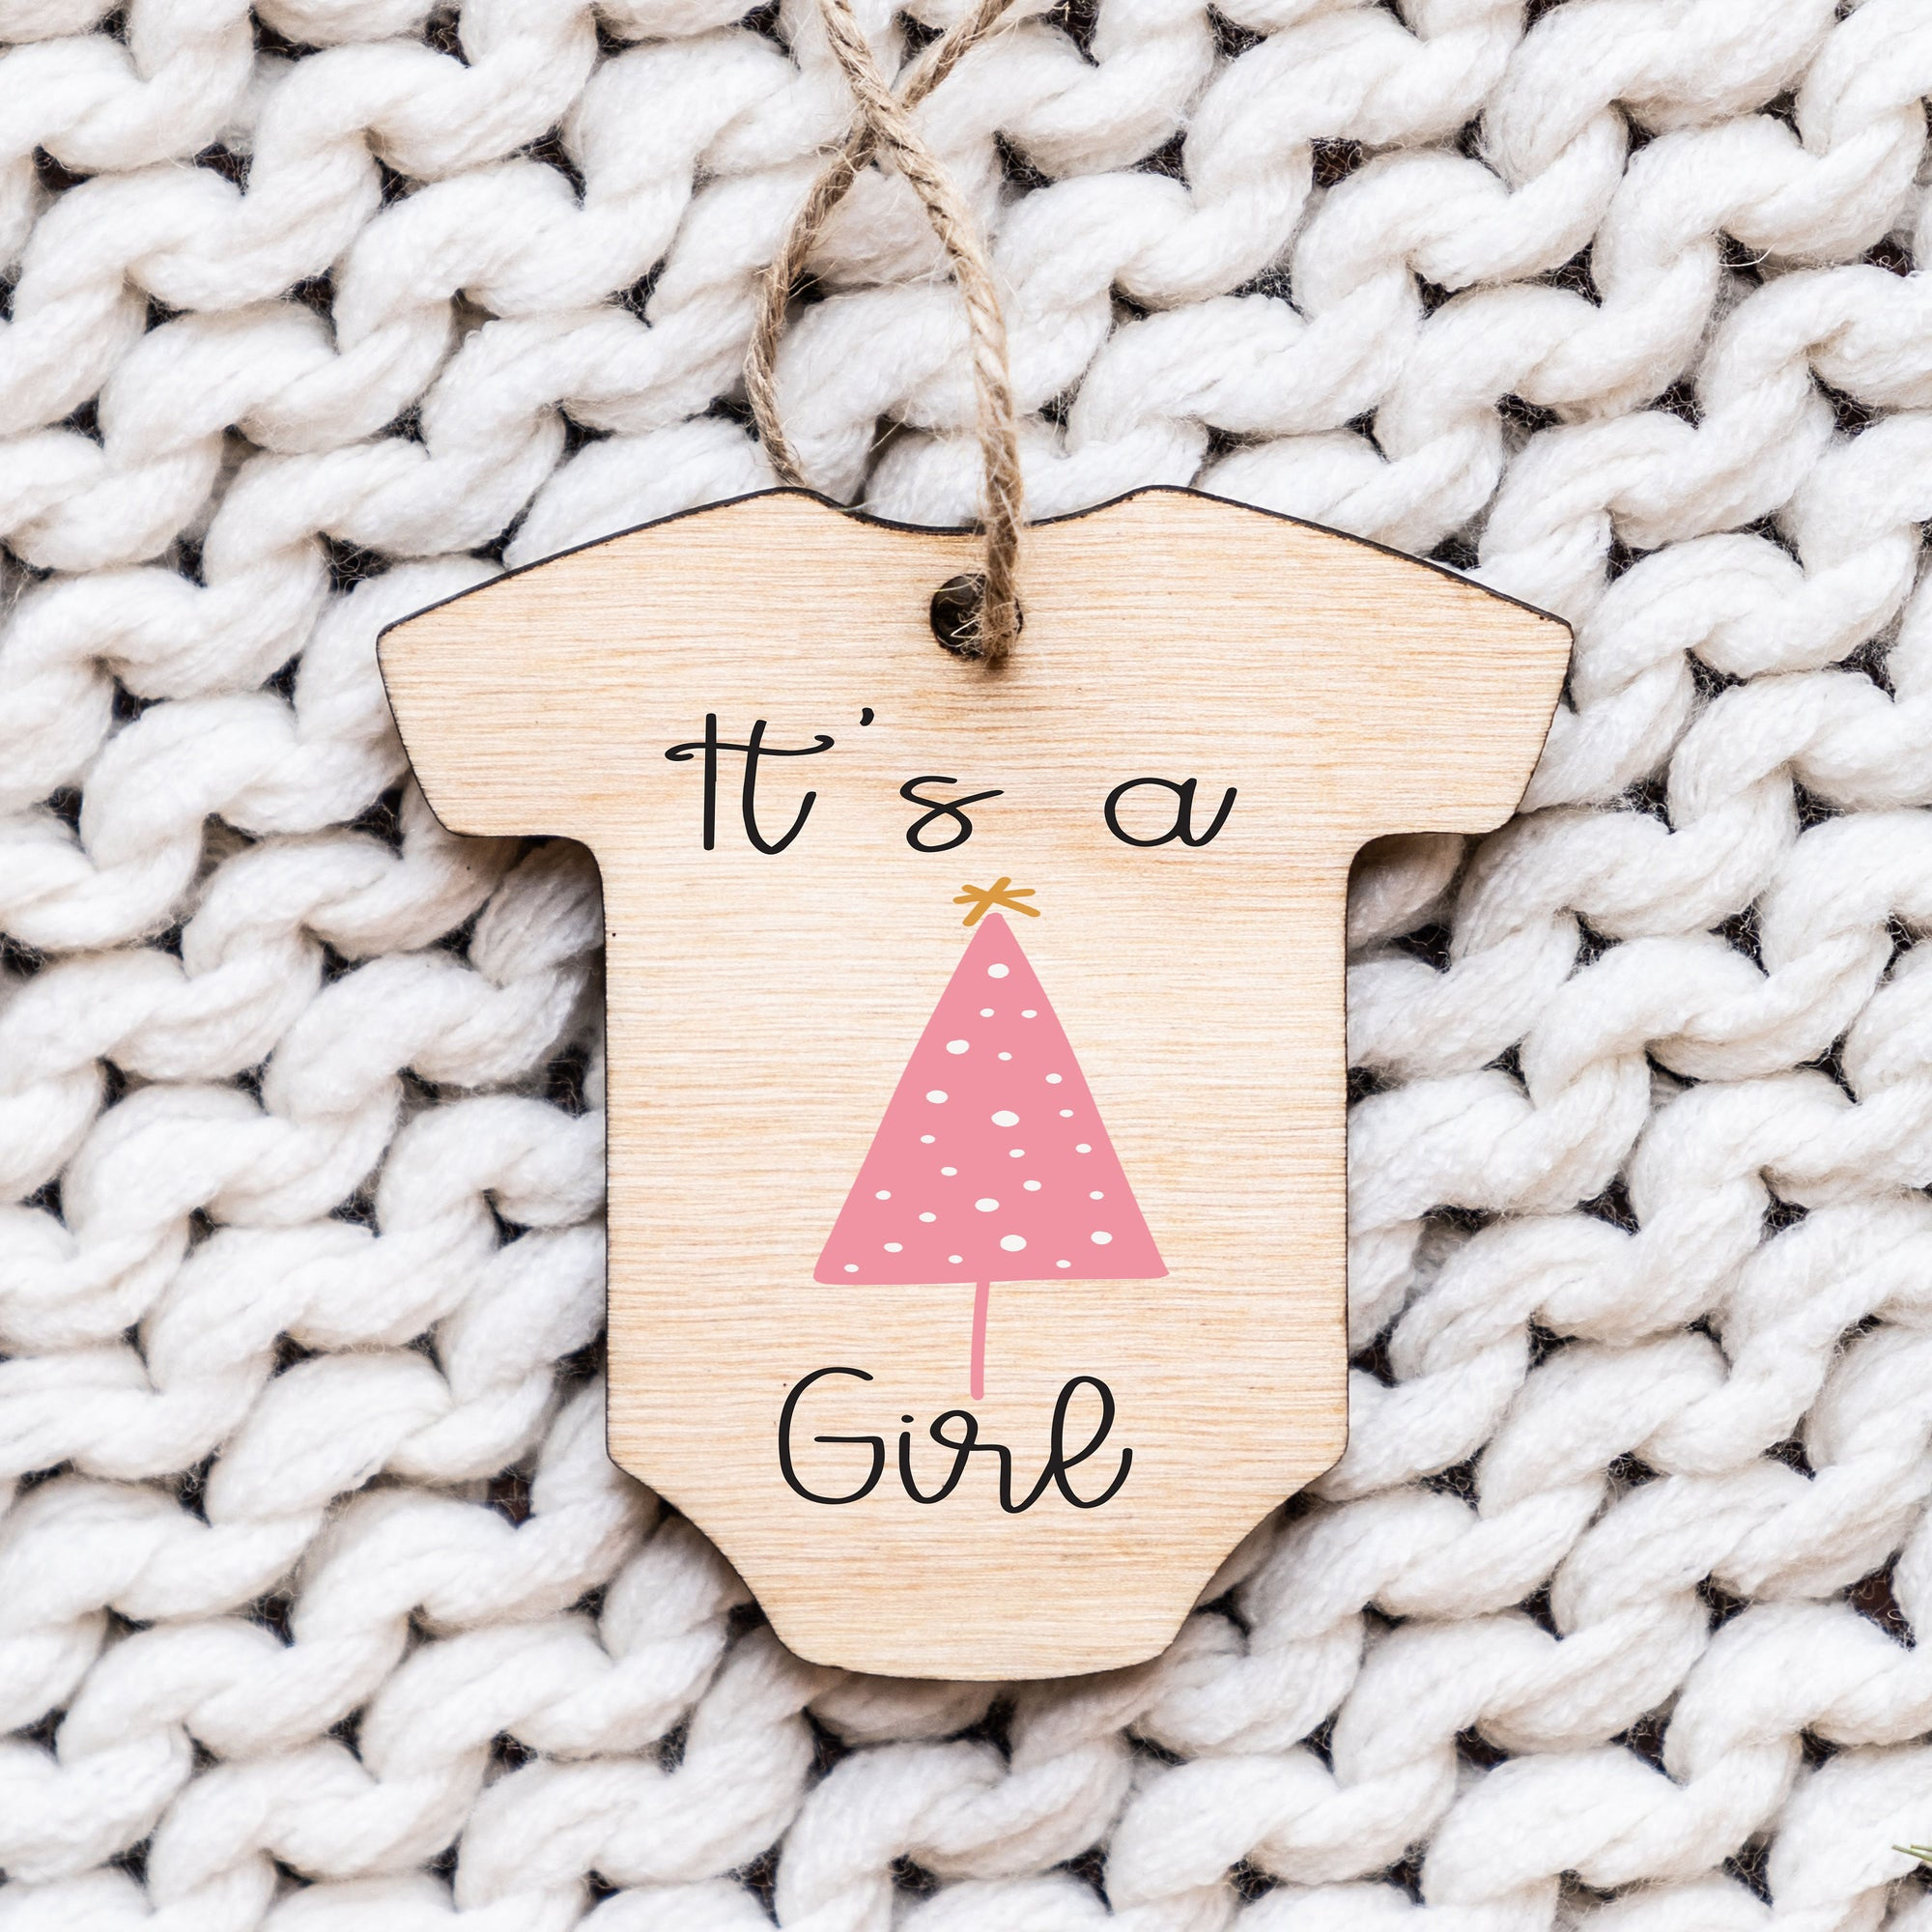 Baby Announcement Ornament, Wood Christmas Ornaments, It's a Girl Ornament, It's a Boy Ornament